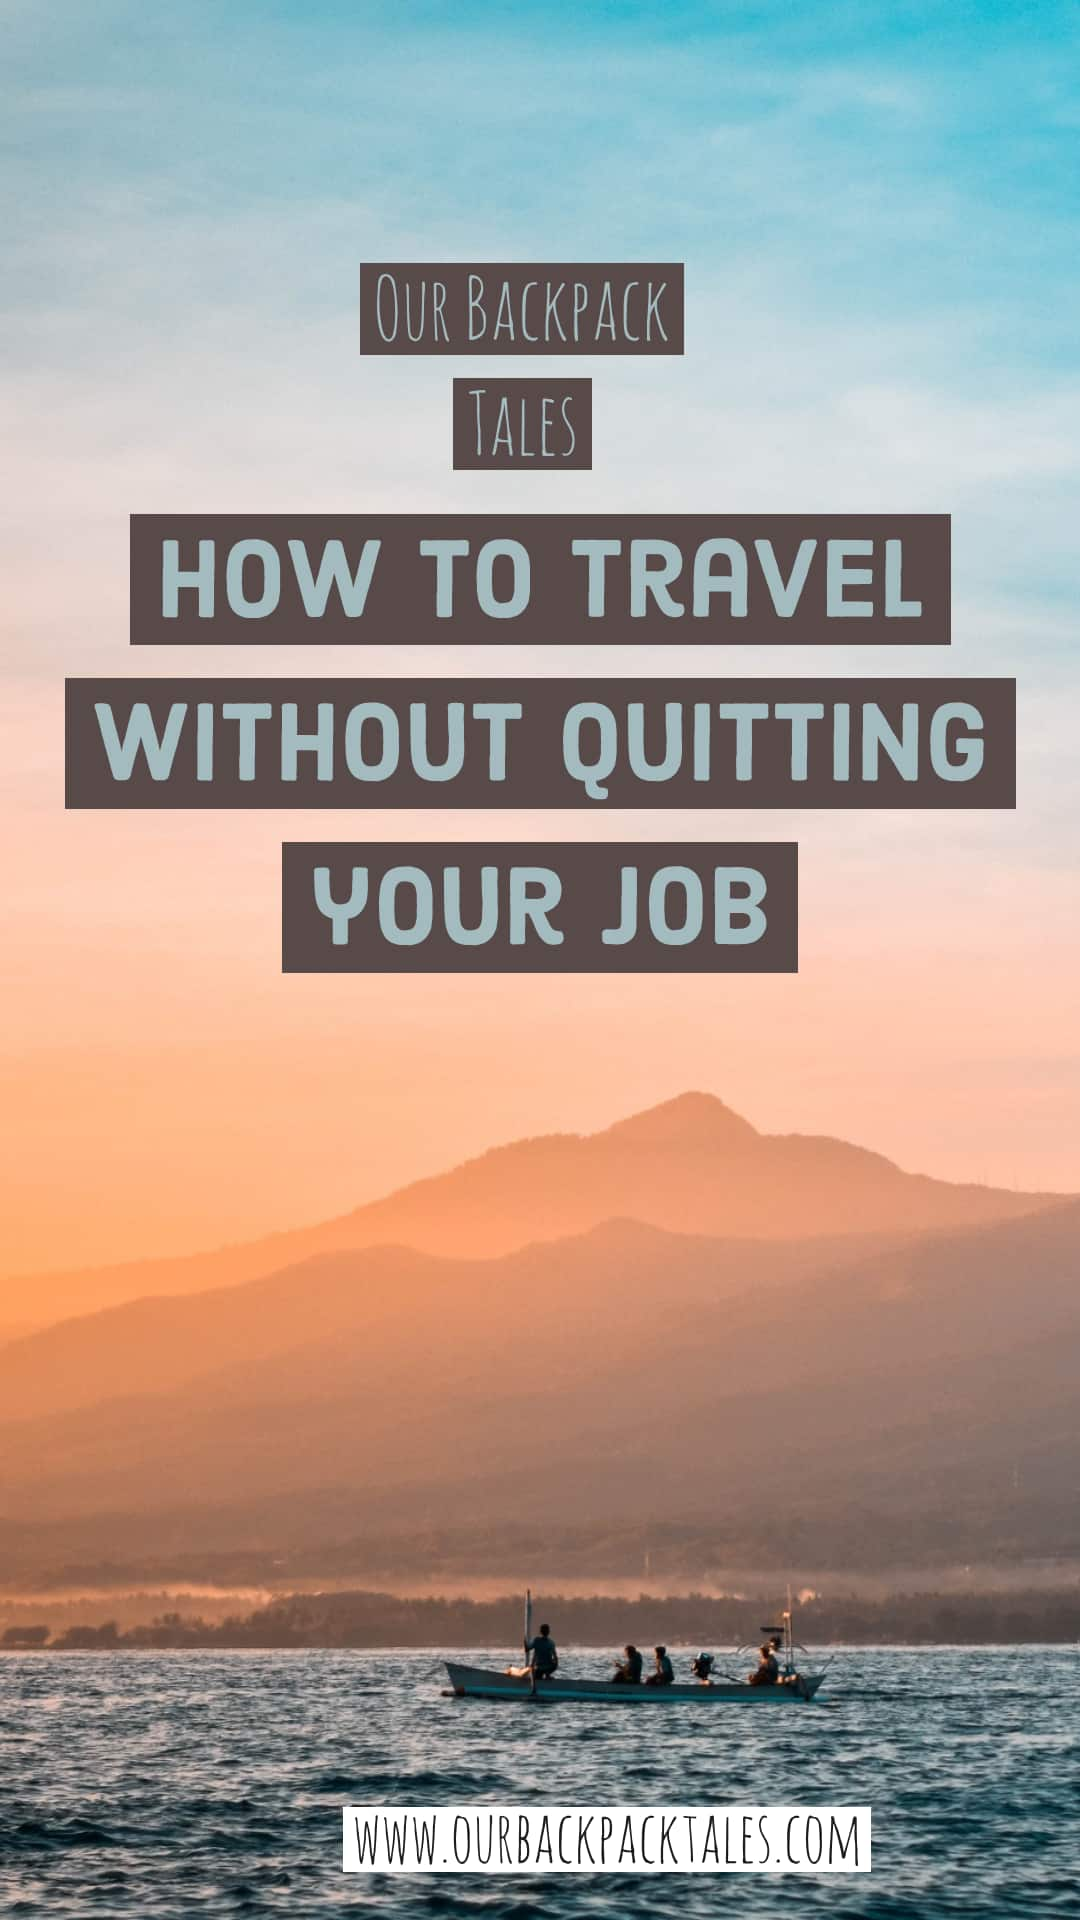 Guide-on-how-to-budget-travel-without-quitting-your-job-our-backpack-tales